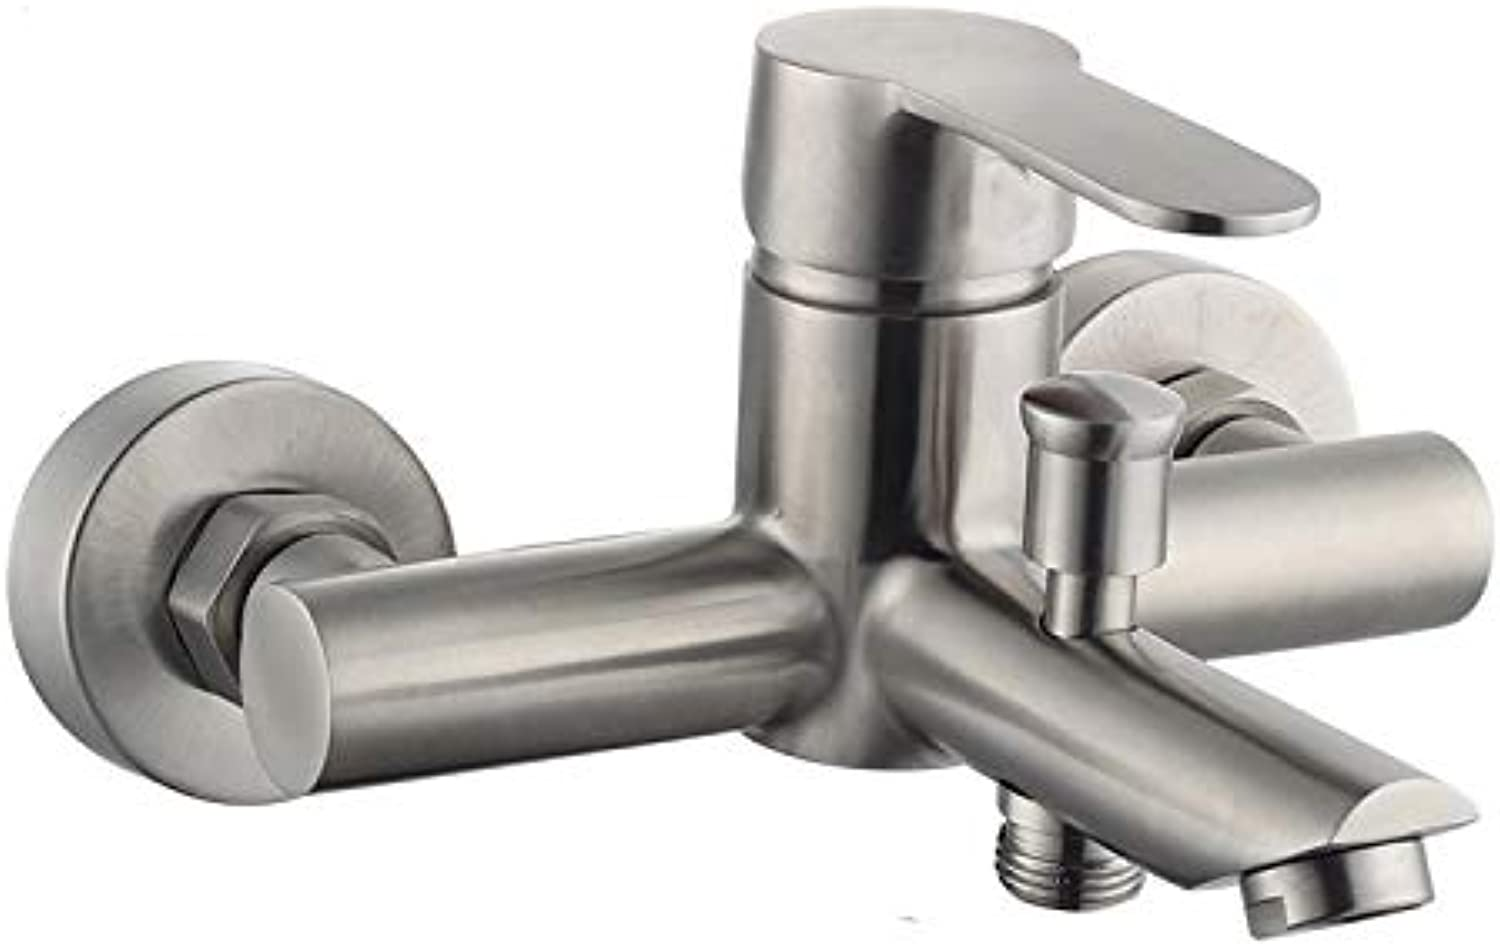 304 Stainless Steel Shower Hot and Cold Faucet Shower Faucet Mixing Valve Concealed